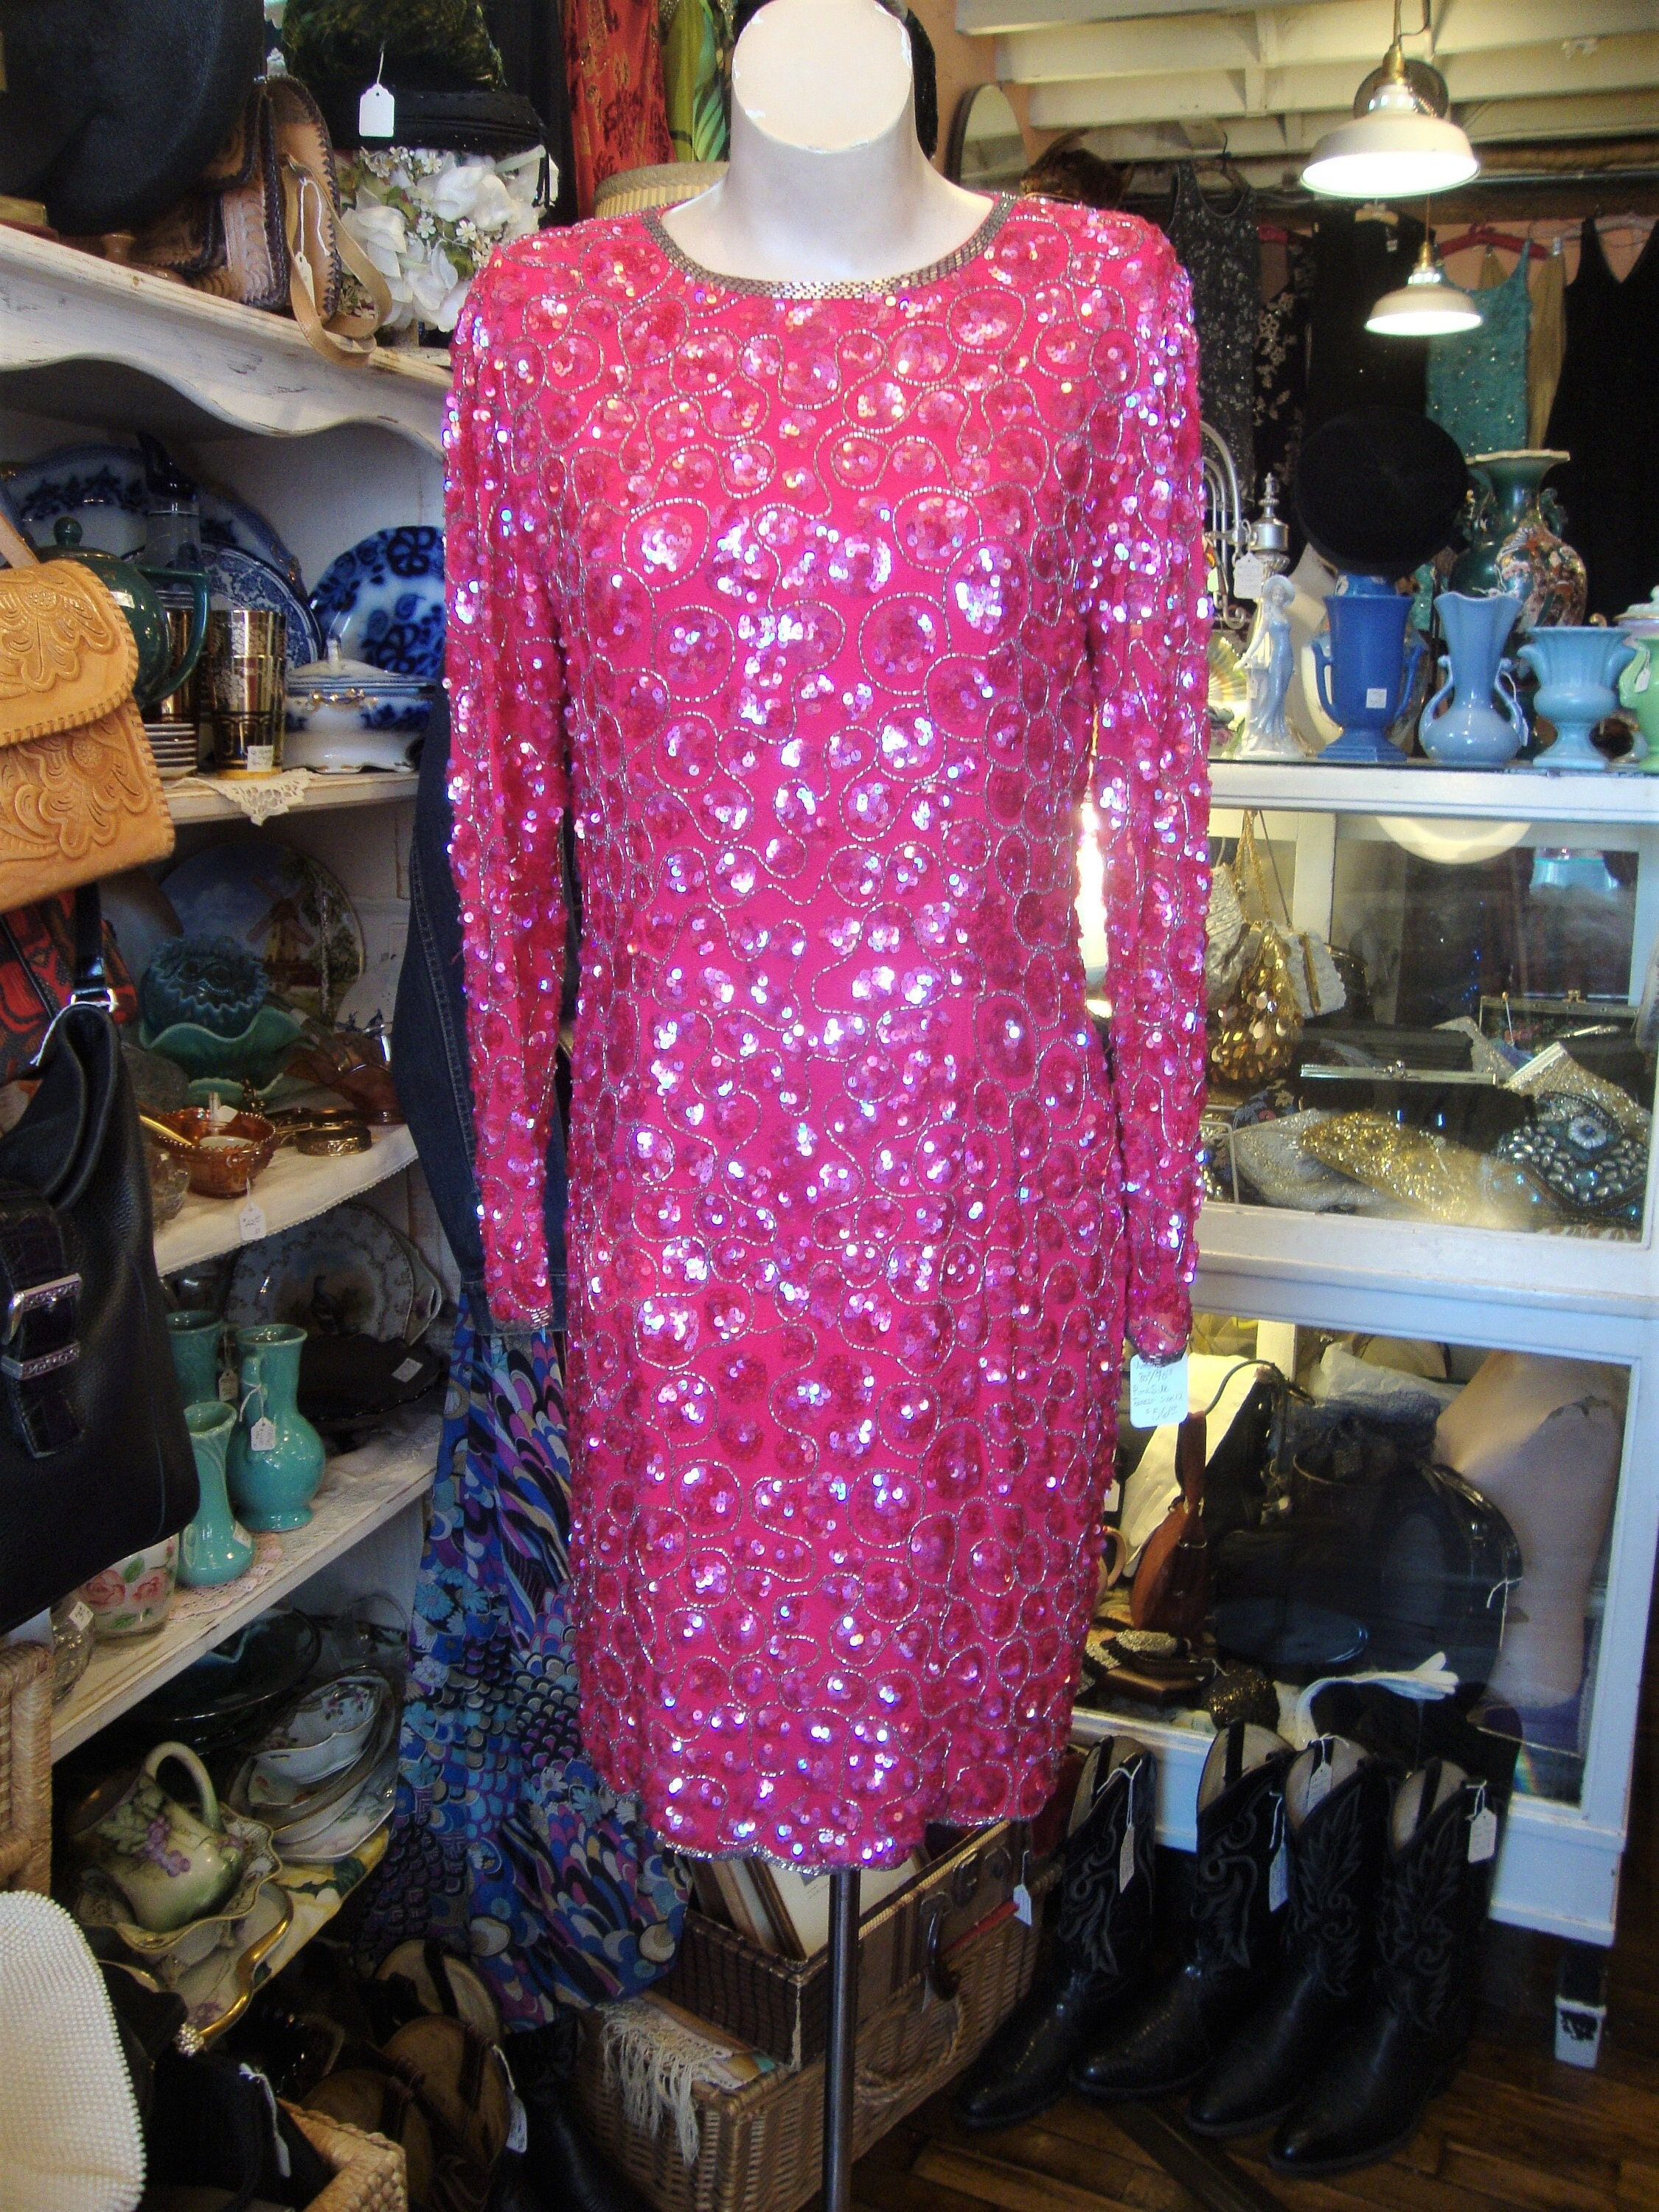 80s Dresses | Casual to Party Dresses Vintage 1980s 1990s Silk Pink Sequin  Beaded Party Holiday DressSize 12 $56.00 AT vintagedancer.com